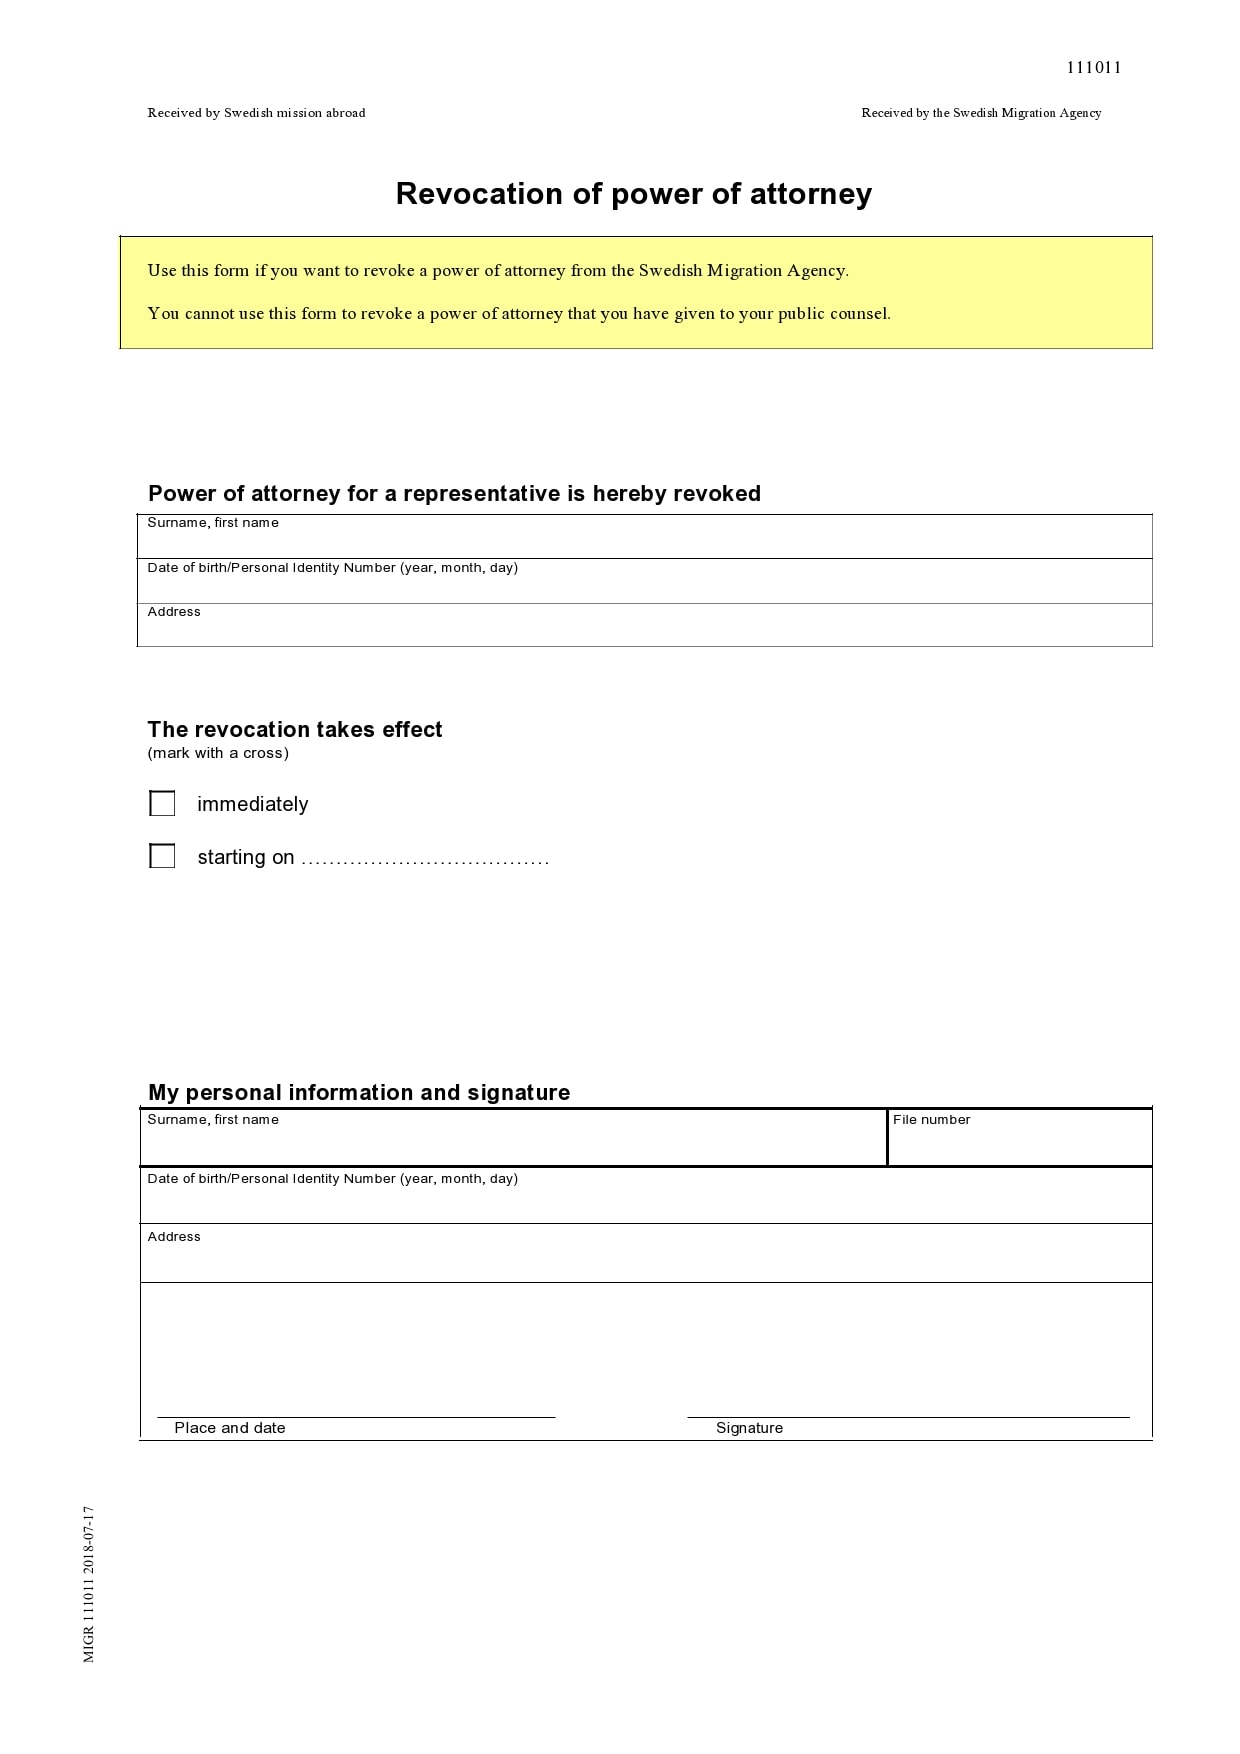 power of attorney revocation form 24